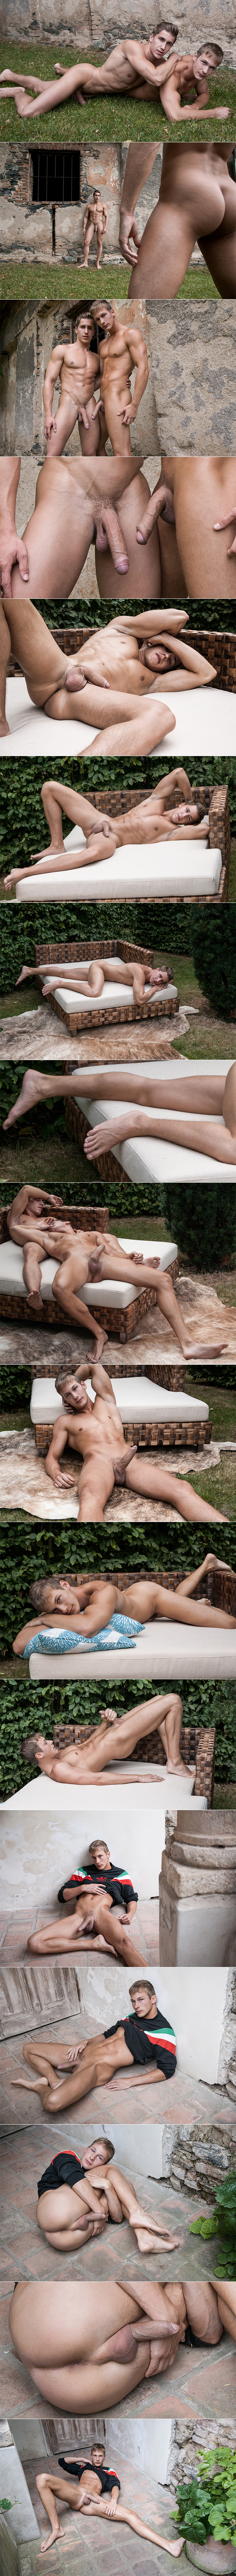 BelAmi Rick Day Art Collection Marcel Gassion Raphael Nyon Photoshoot Big Uncut Cocks Closeup Penis Male Feet Soles Toes 2